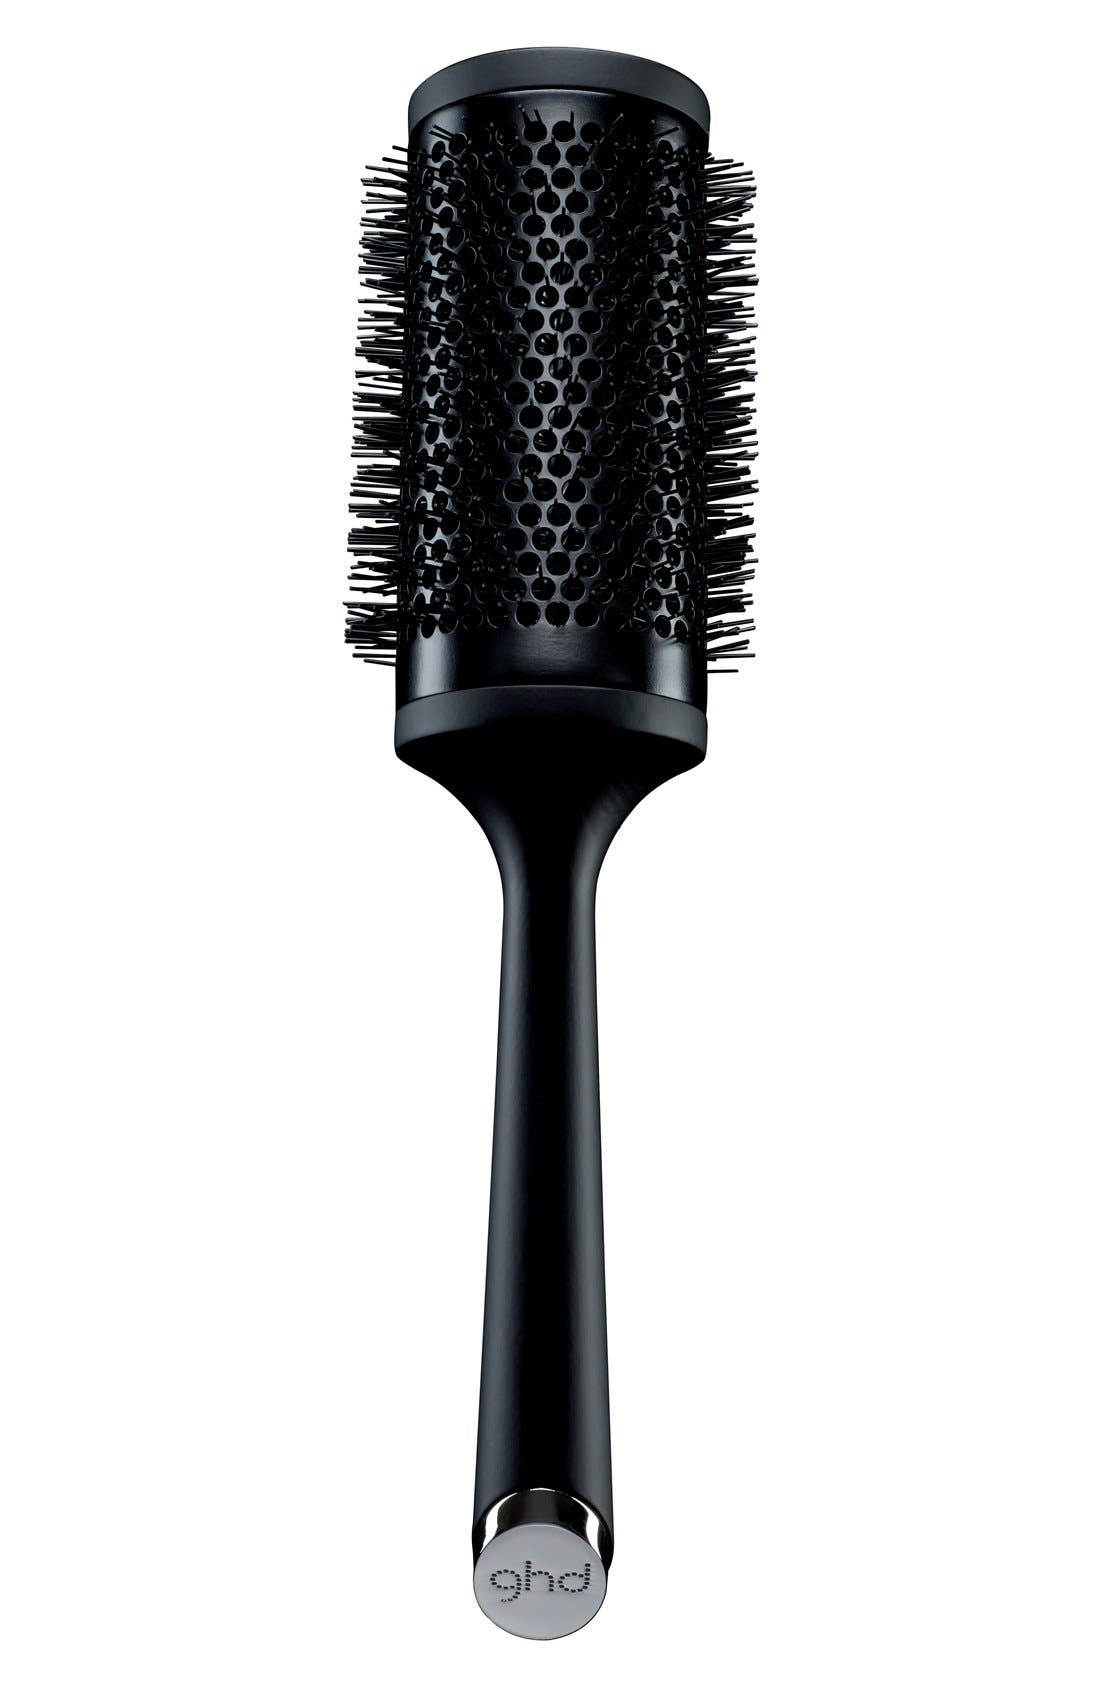 Alternate Image 1 Selected - ghd Ceramic Vented Radial Brush Size 4 (55mm)